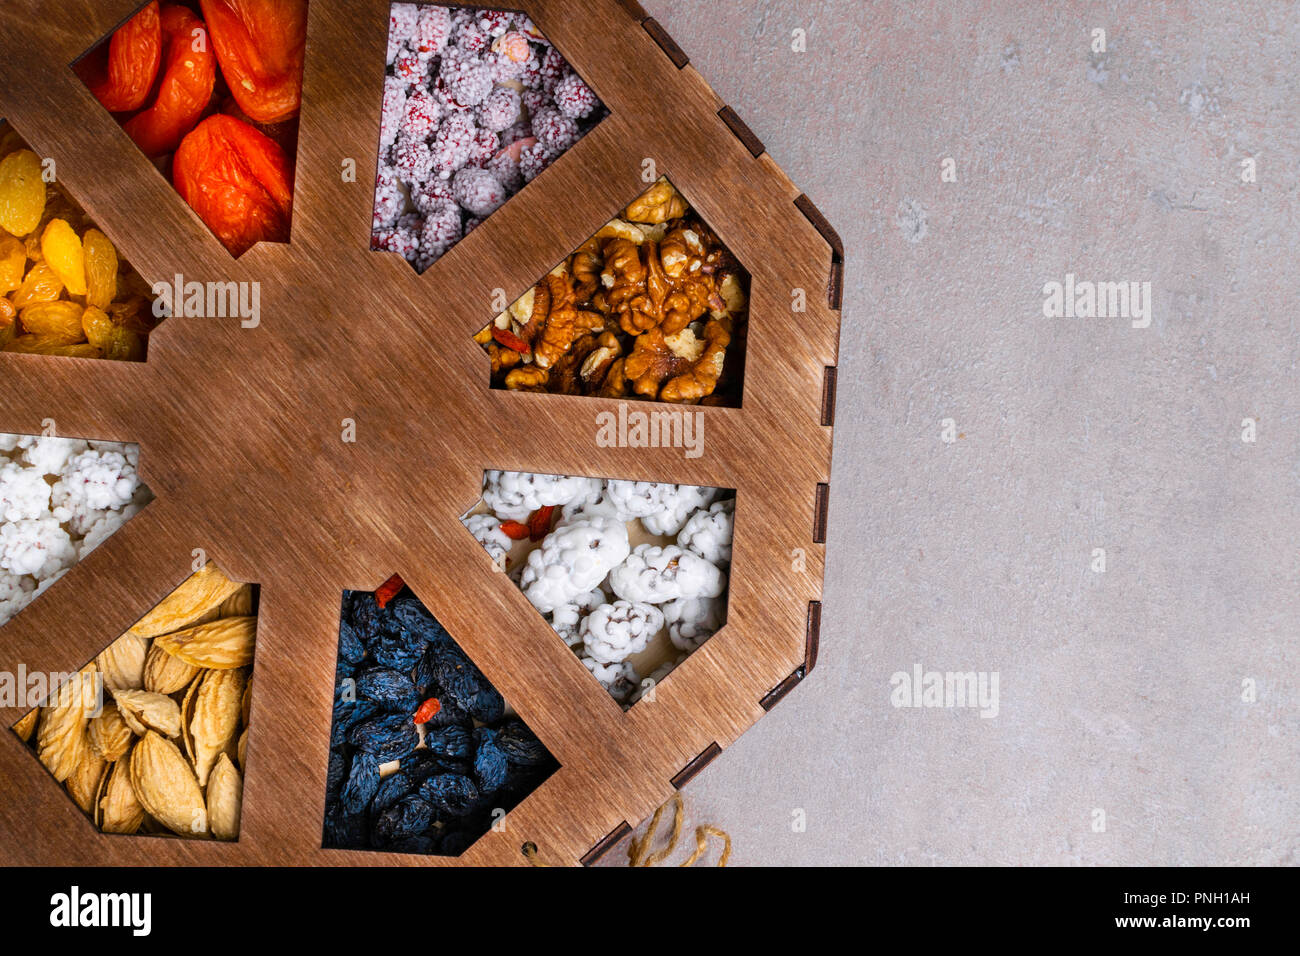 Mixed Nuts on grey background, as apricot, raisins, walnuts, goji, peanuts in glaze, almonds Healthy food and snack. vitamins, fiber, pectin, iron, po Stock Photo